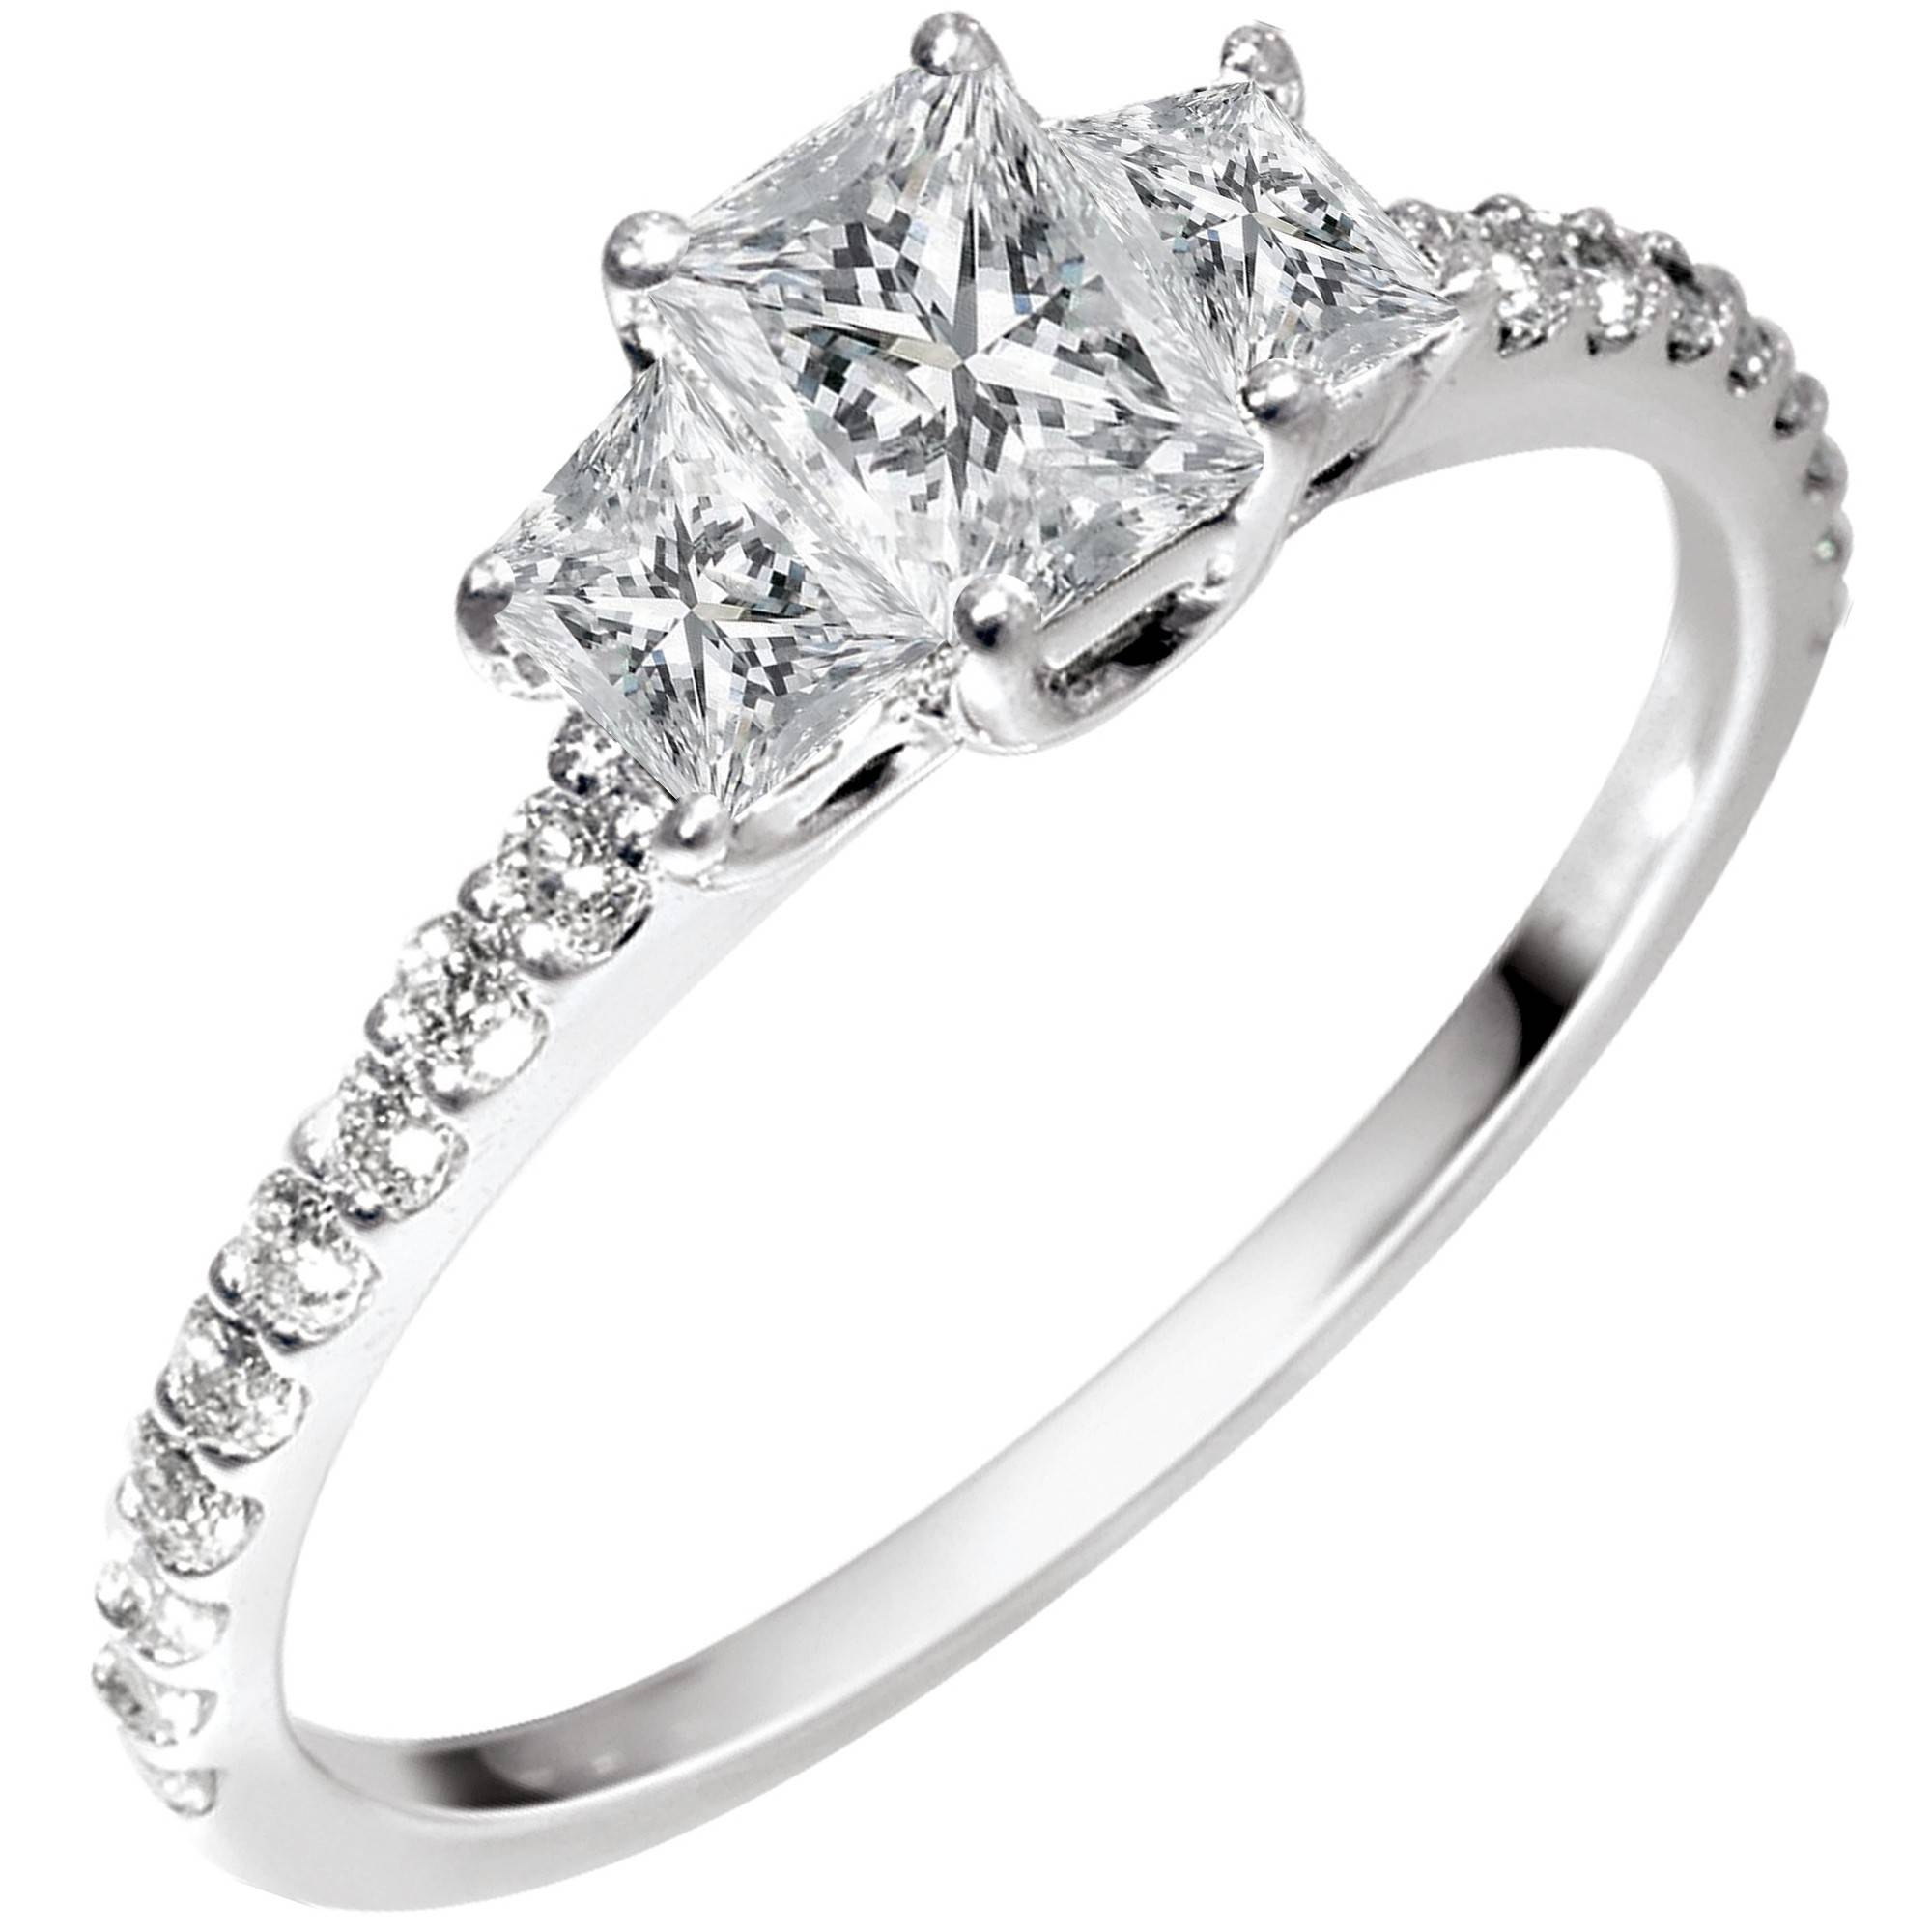 Radiant Cut Diamond And Trapezoid Cut Diamond 3 Stone Ring In 18Kt Regarding Radiant Wedding Rings (View 5 of 15)